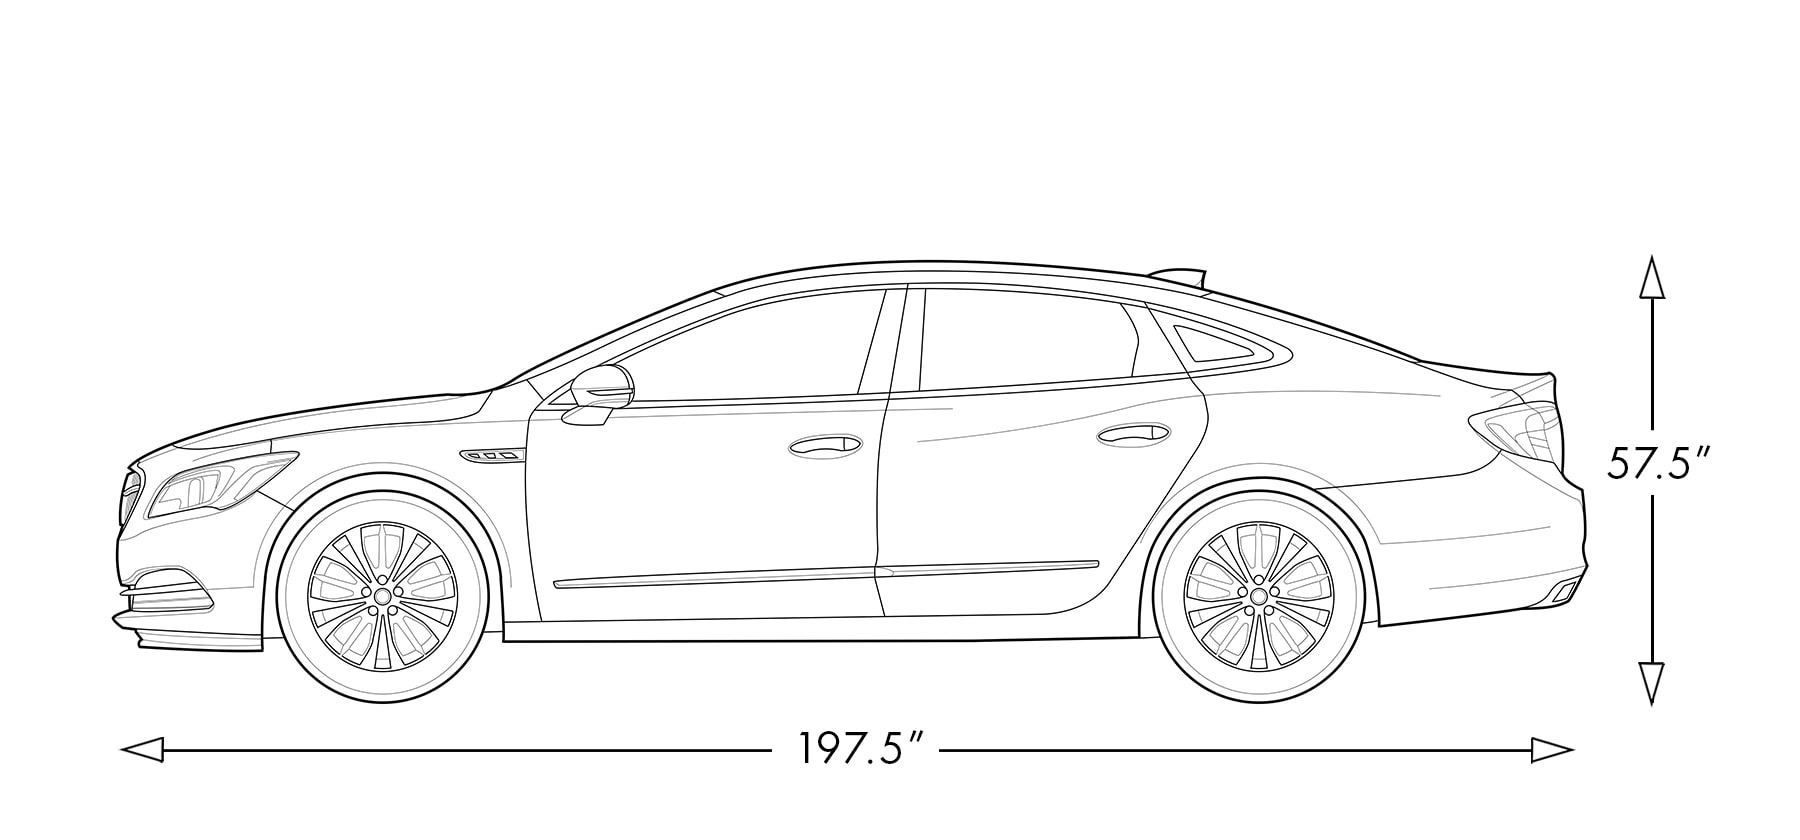 Chart image showing the height and length of the 2019 Buick LaCrosse full-size luxury sedan.